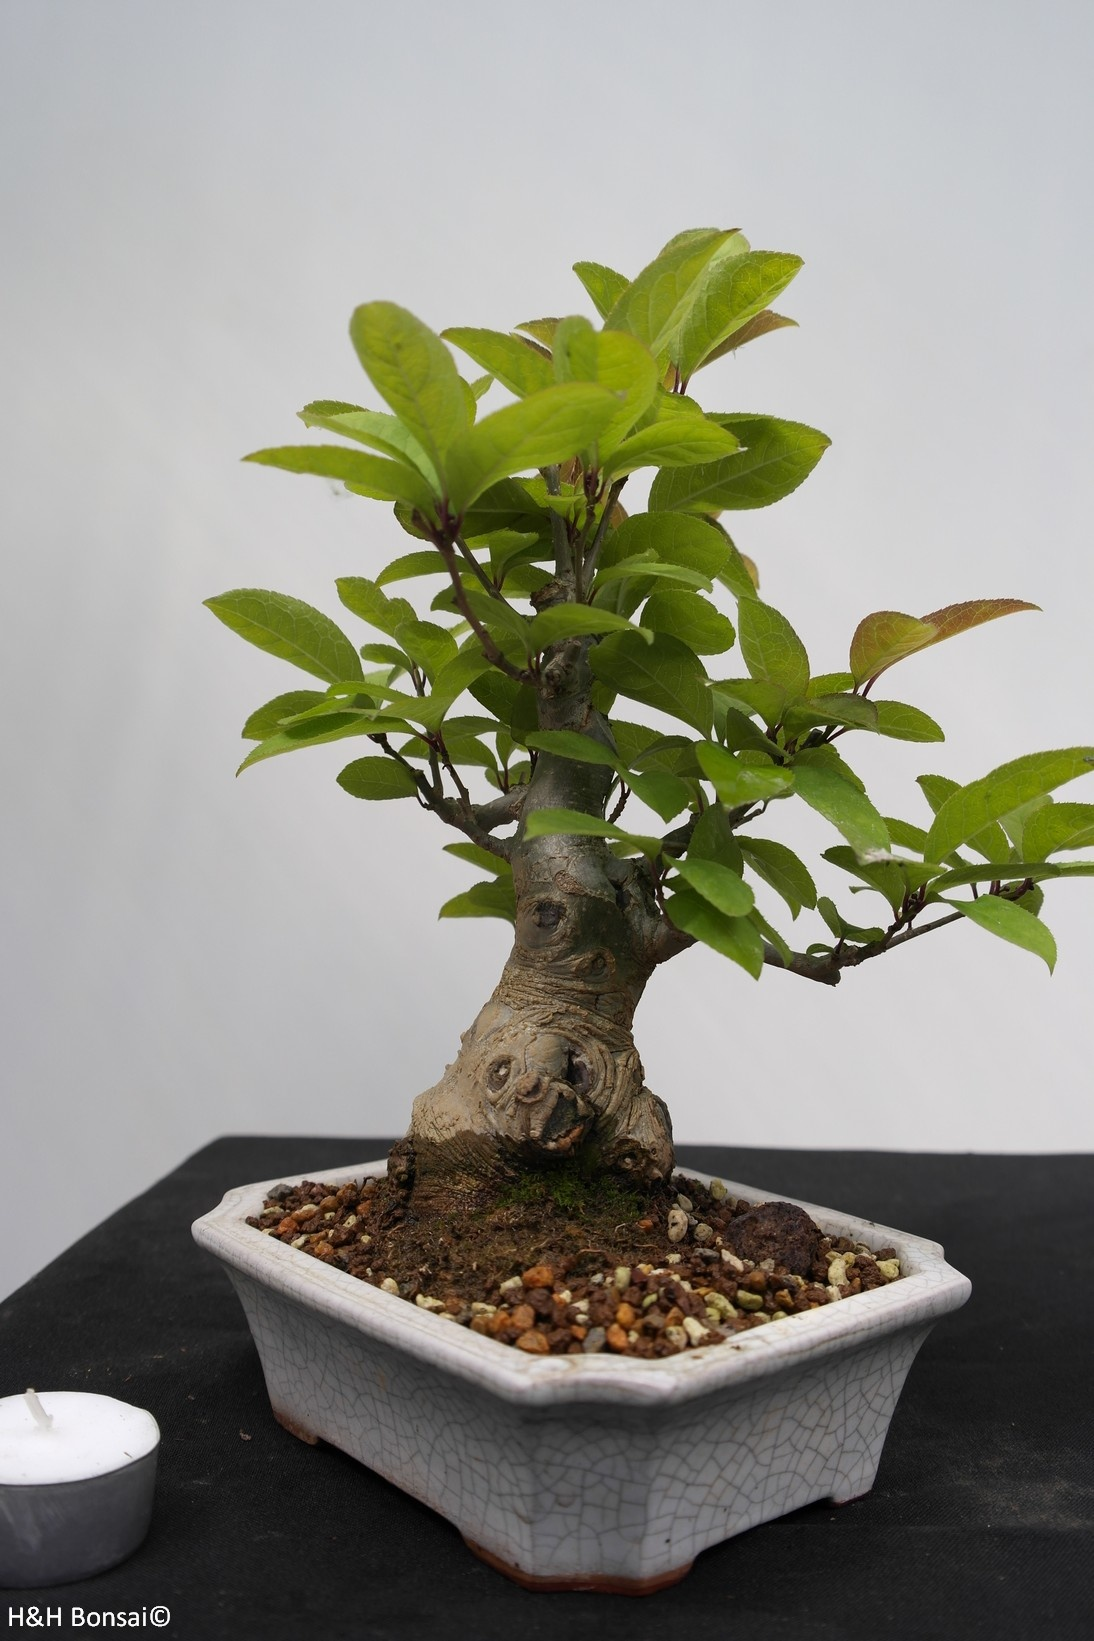 Bonsai Shohin Japanese Winterberry, Ilex serrata, no. 7781